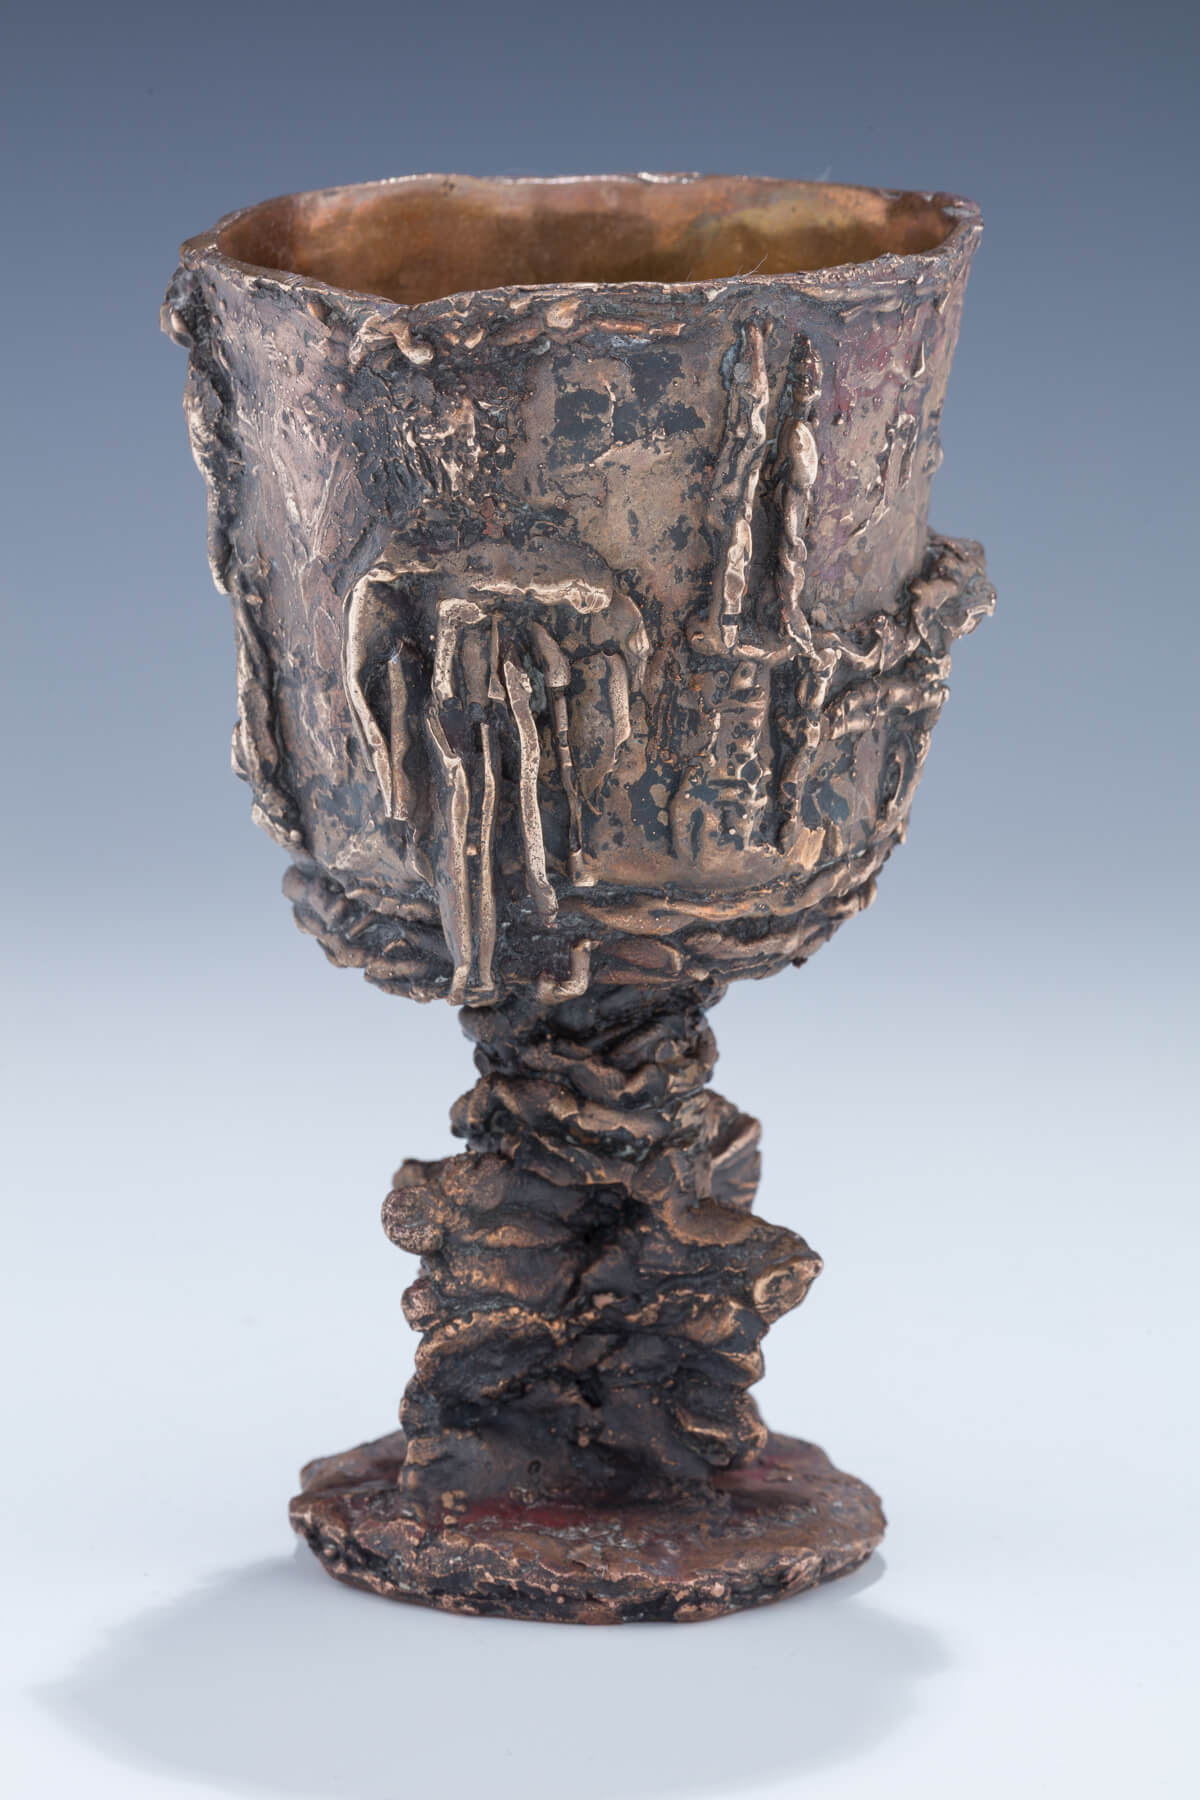 155. A Brass Kiddush Goblet by Hana Geber